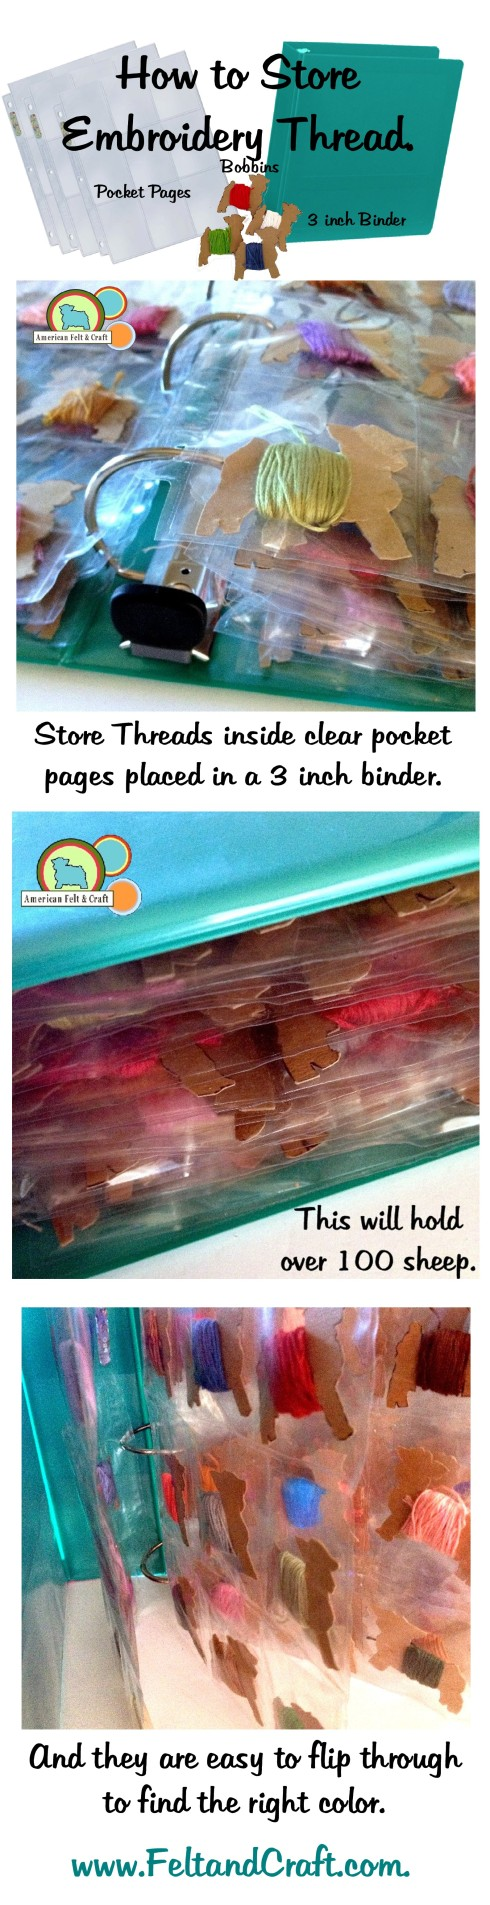 "Store Embroidery thread in 3"" binder and pocket pages. Easy to see and stores on a shelf."